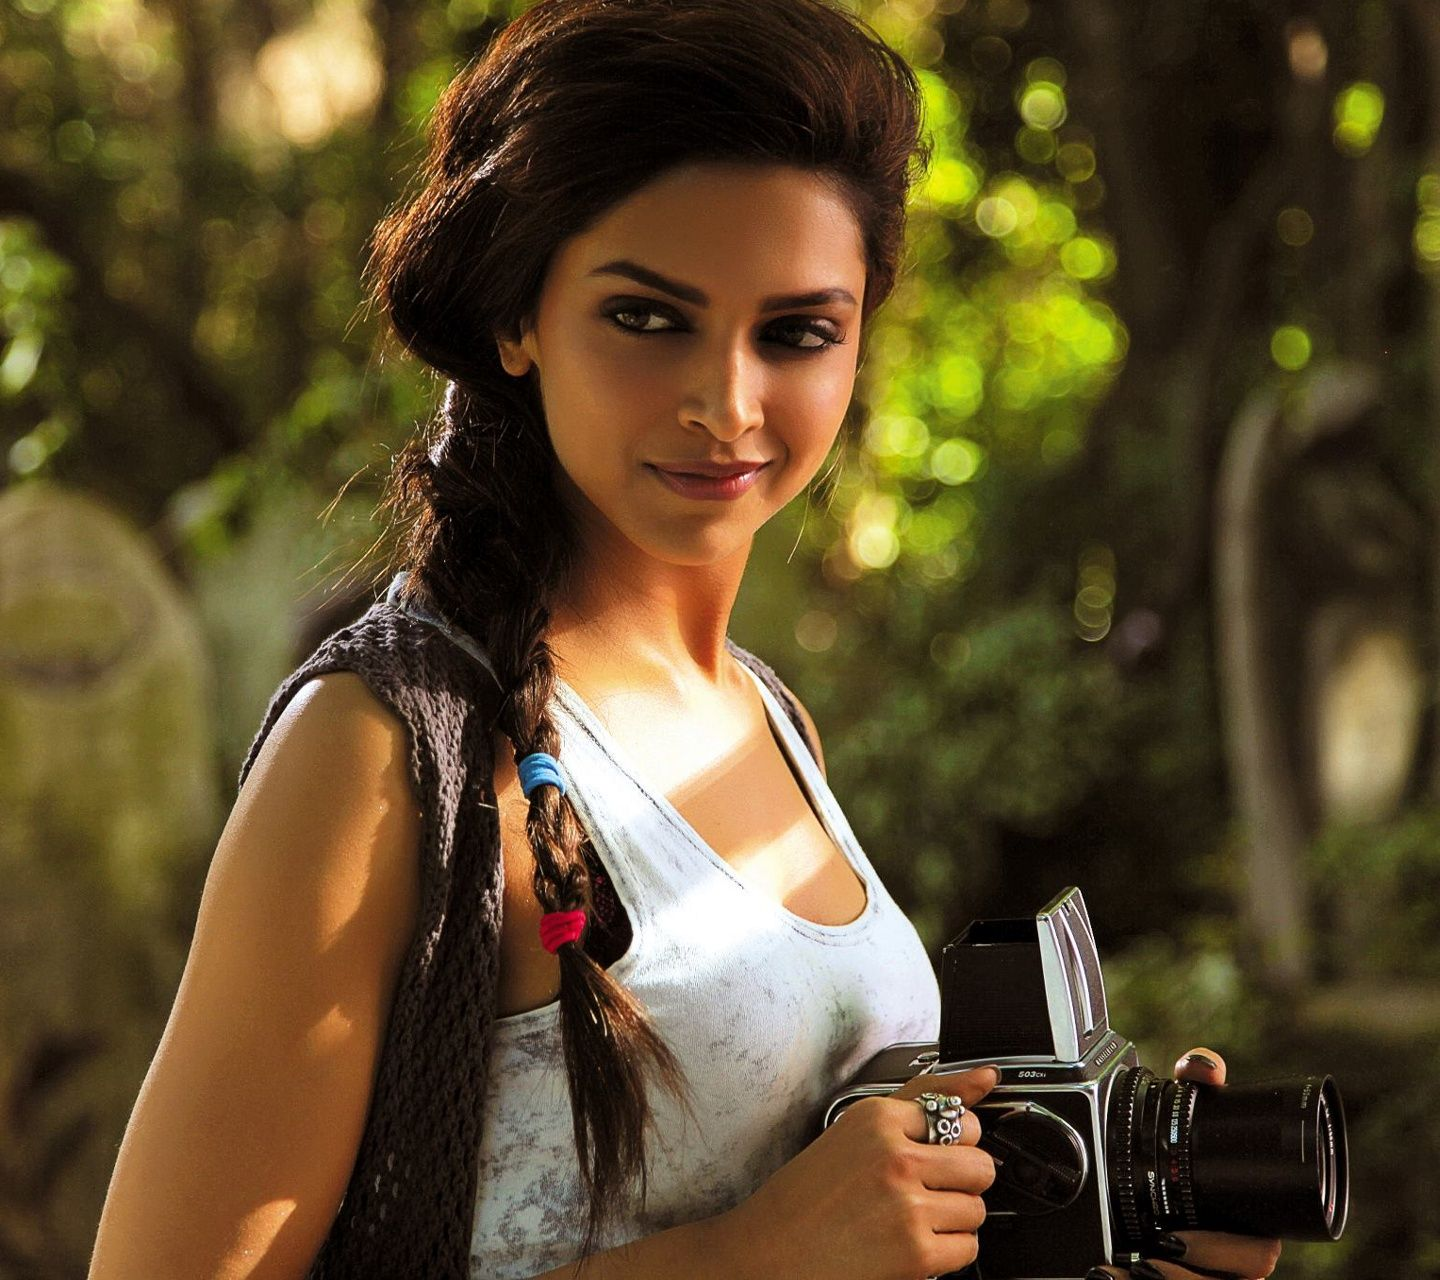 Free Download Bollywood Actresses Wallpapers New Wallpapers New Backgrounds 1440x1280 For Your Desktop Mobile Tablet Explore 20 Actresses Wallpaper South Actresses Wallpapers Hollywood Actresses Wallpapers Bollywood Actresses Wallpapers Hd 2013